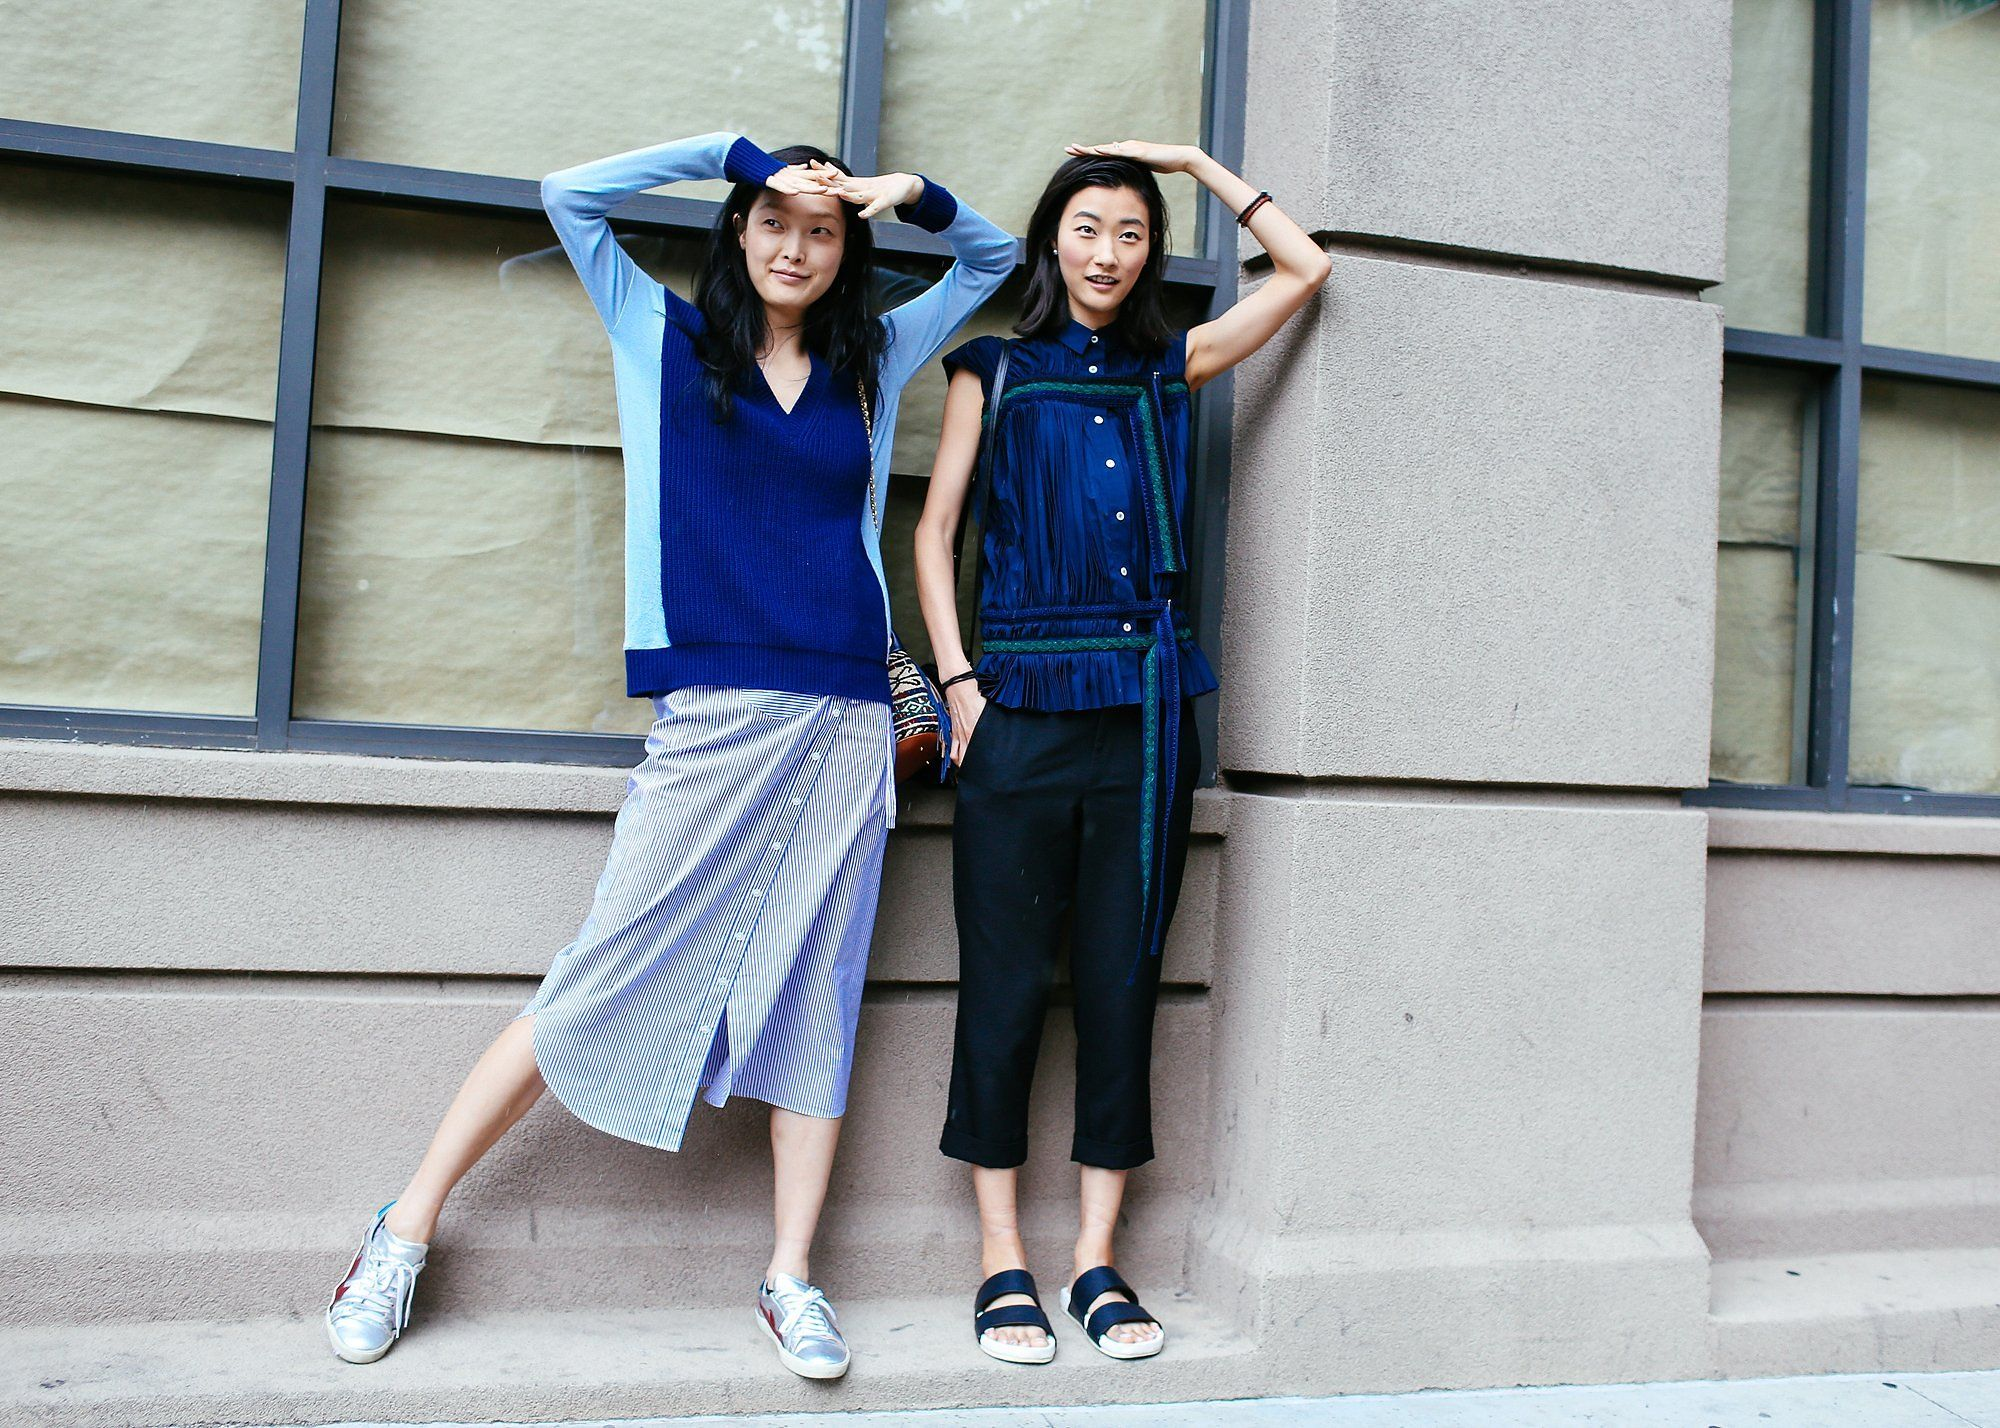 Sung Hee Kim and Ji Hye Park at New York Fashion Week Spring 2016